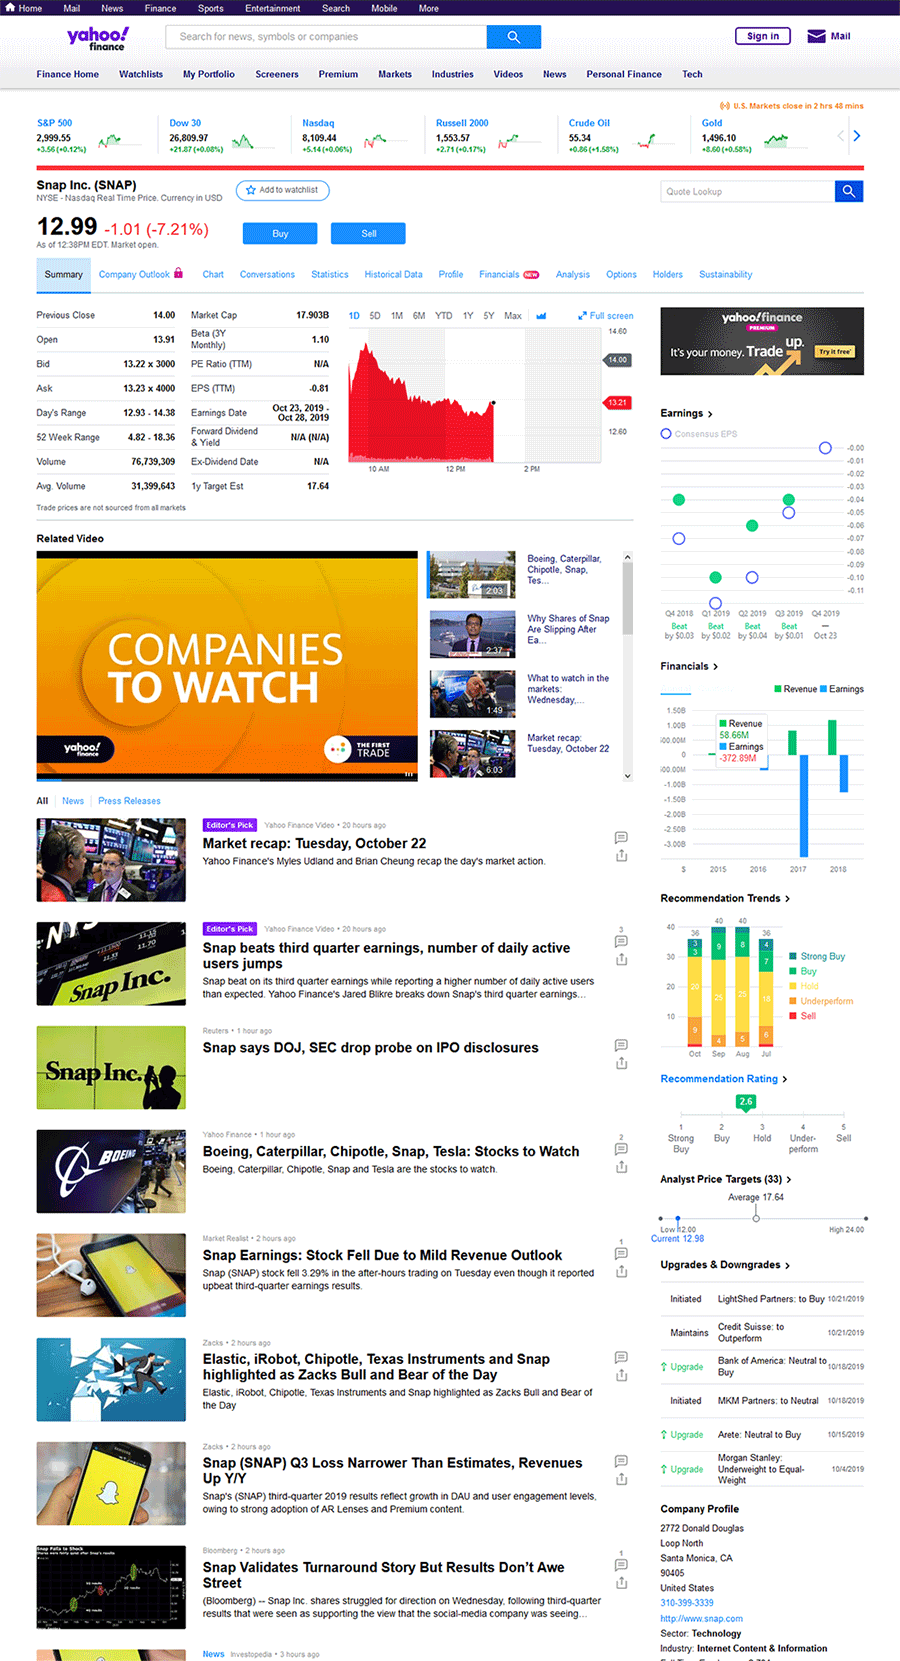 Yahoo Finance!